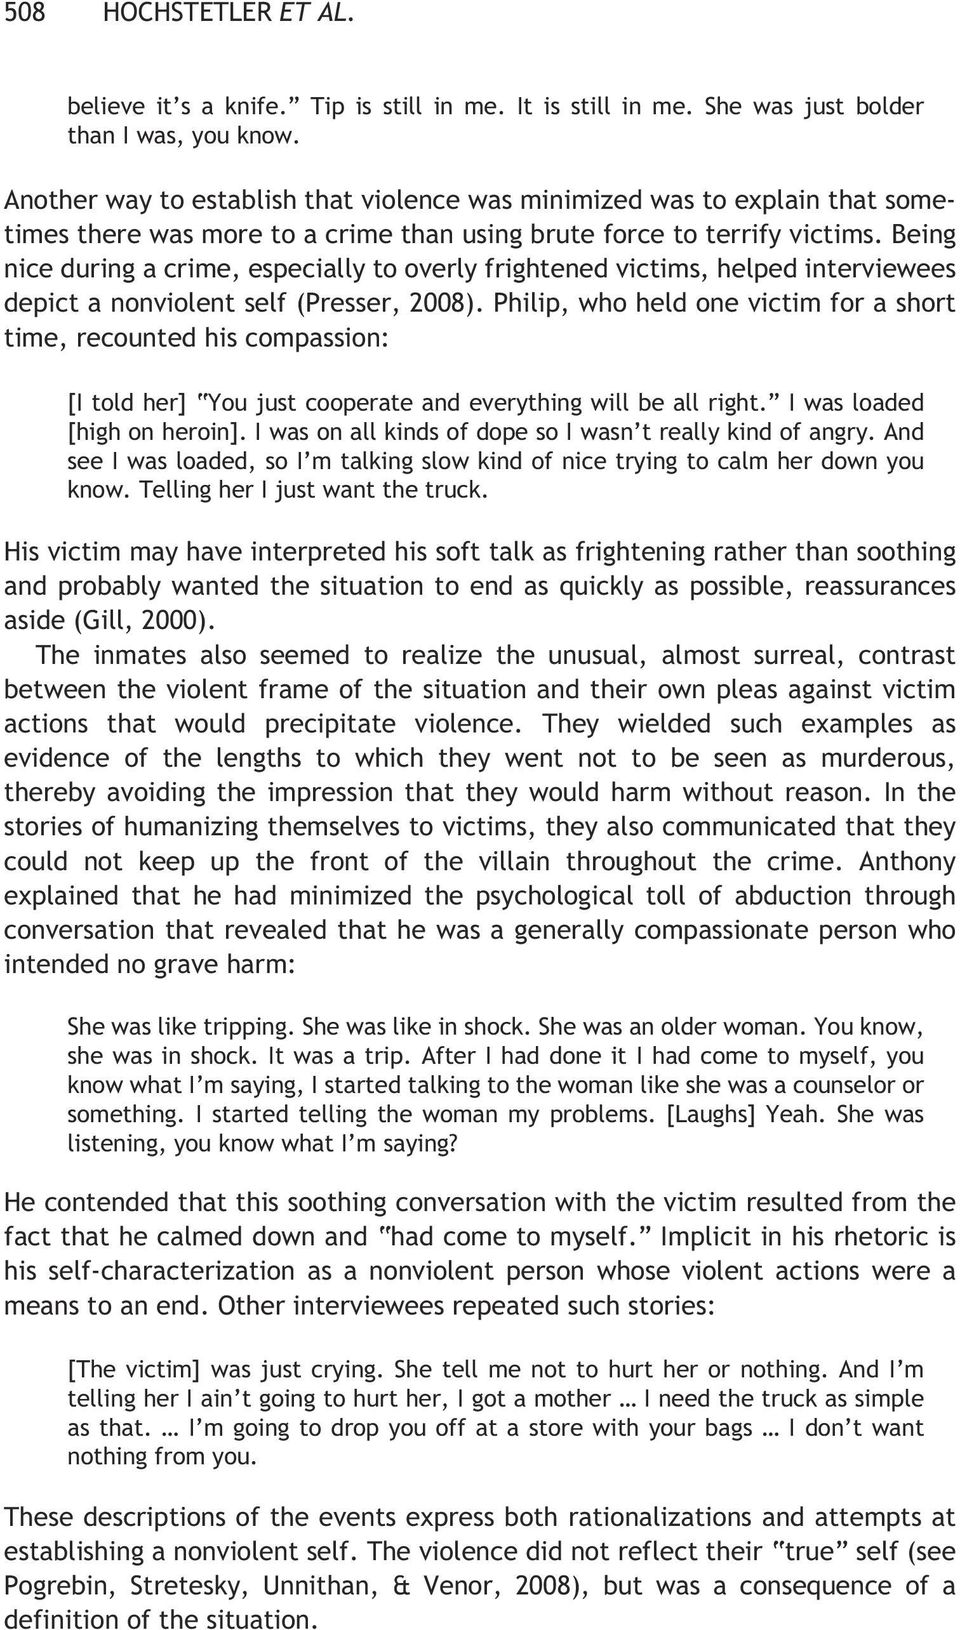 Being nice during a crime, especially to overly frightened victims, helped interviewees depict a nonviolent self (Presser, 2008).